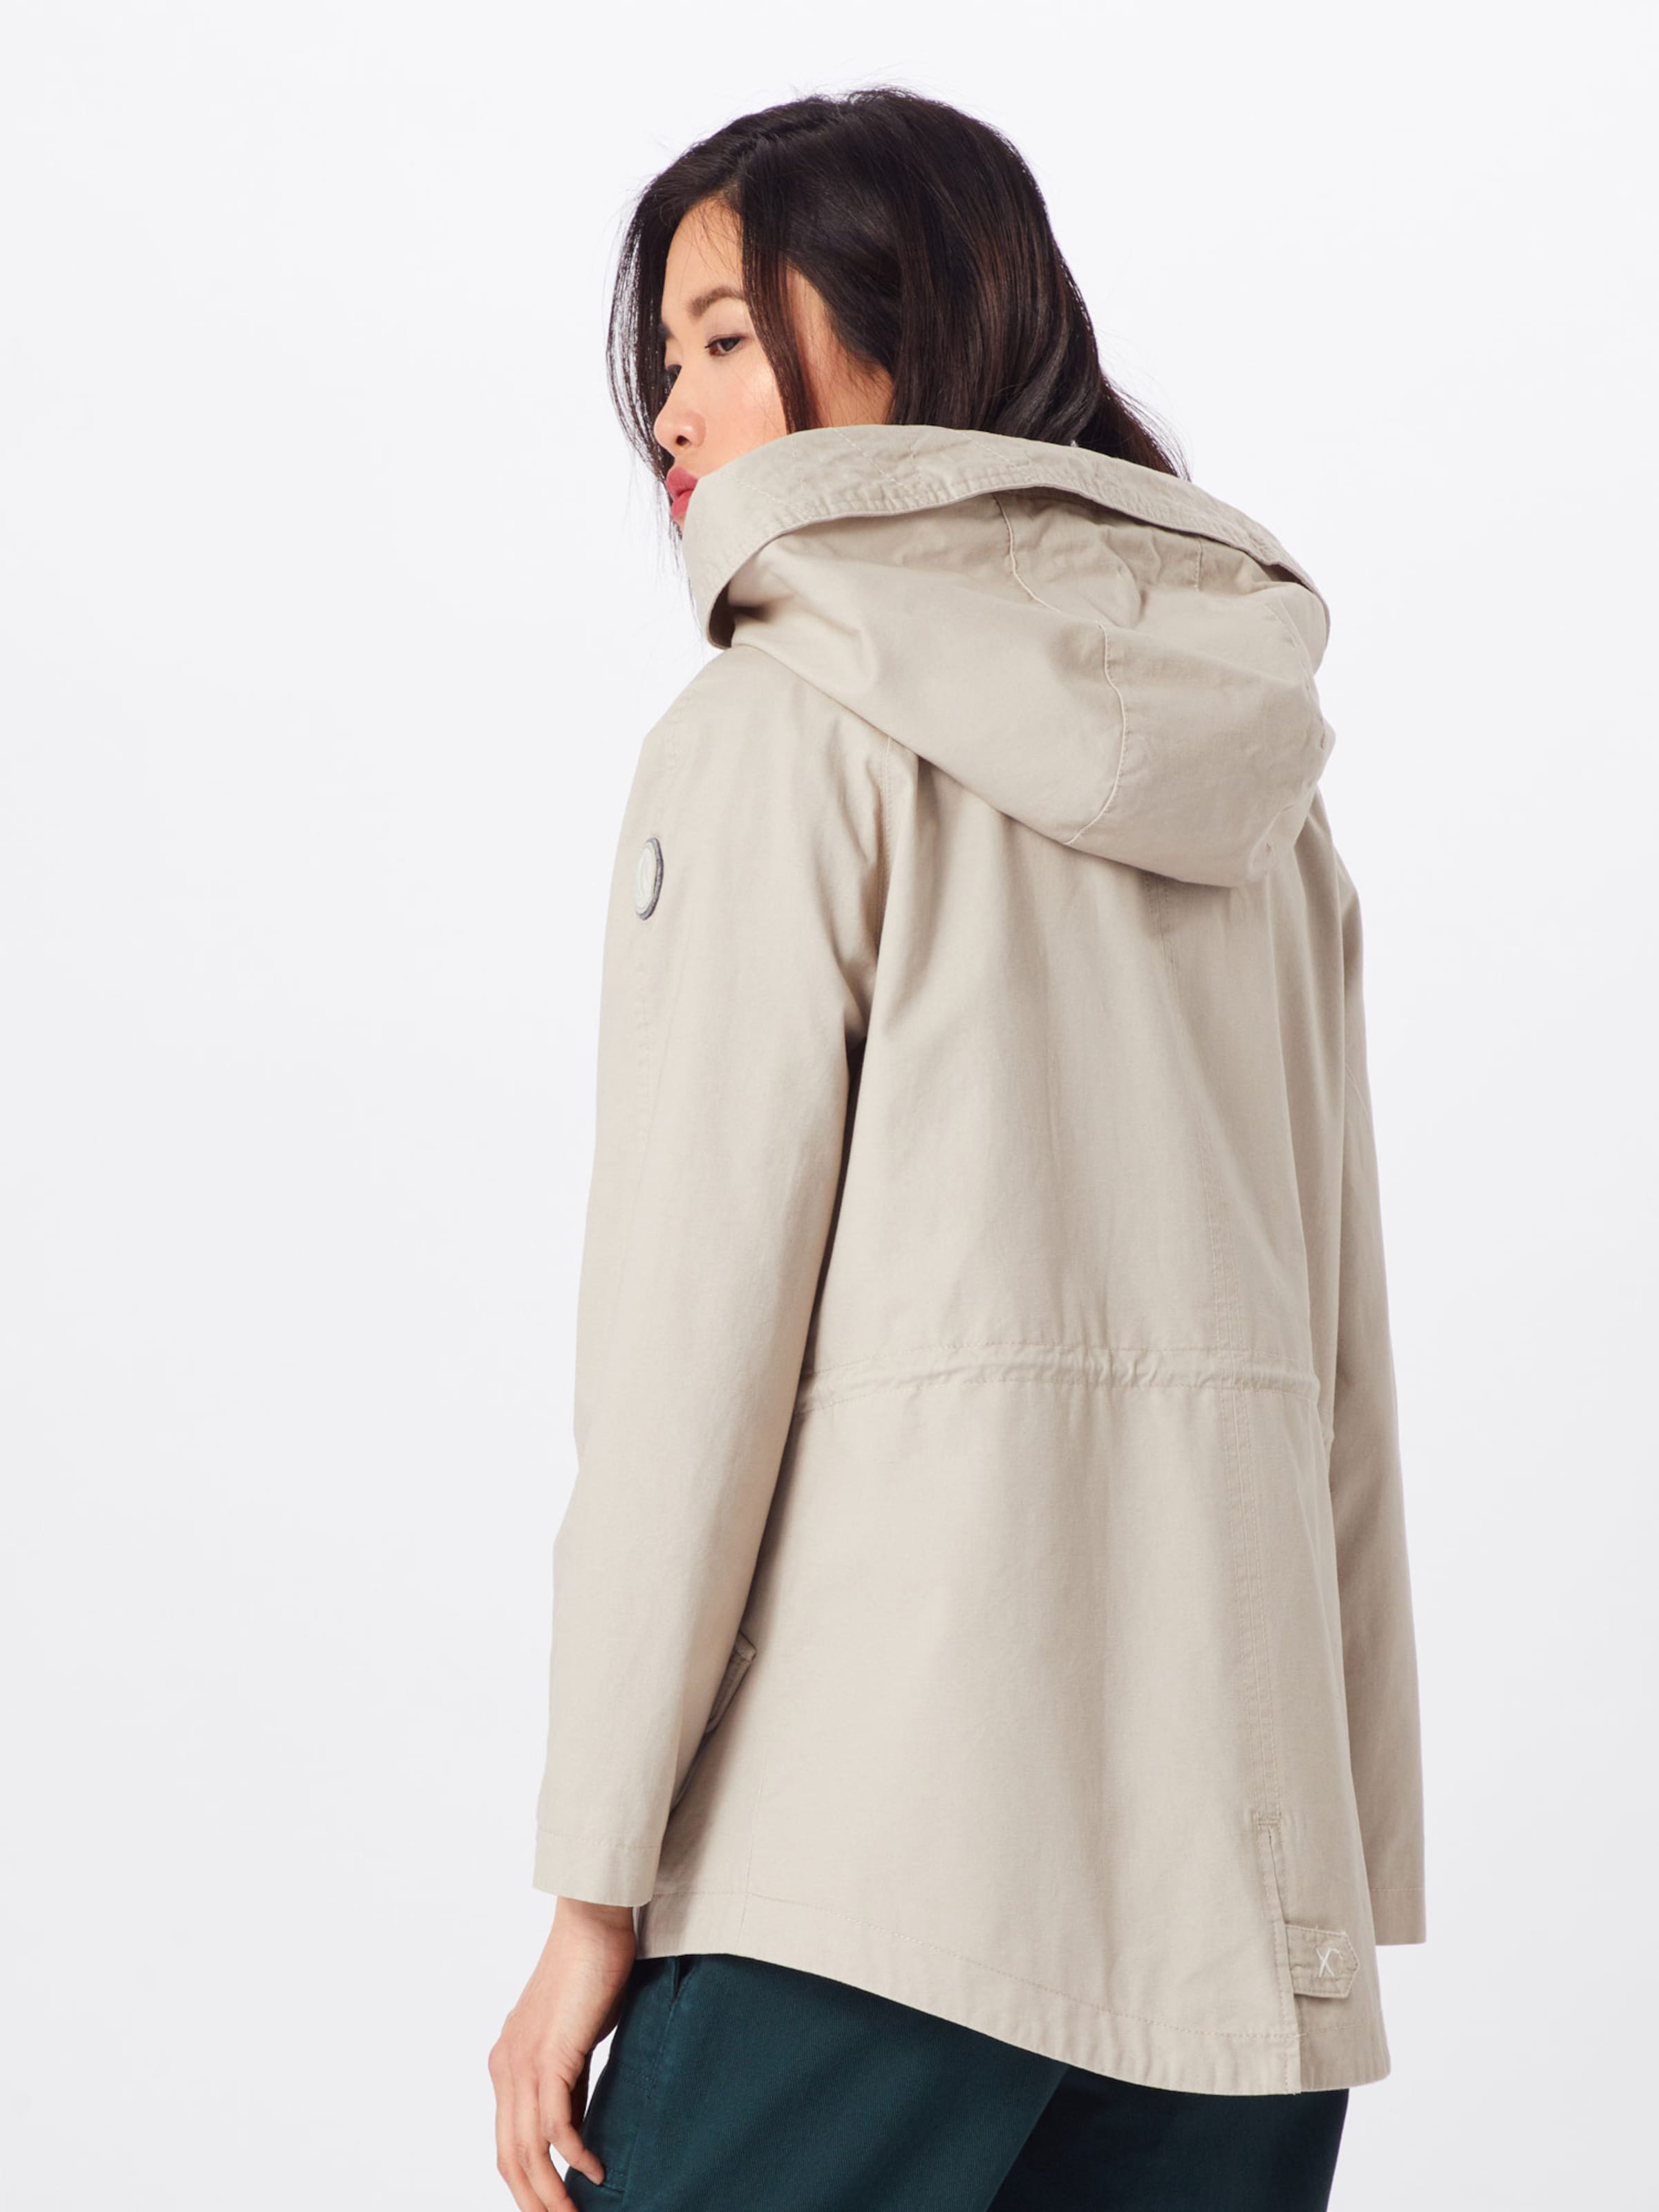 In In Jacke S S oliver Jacke Beige Jacke S oliver oliver In Beige NO8wPnk0X